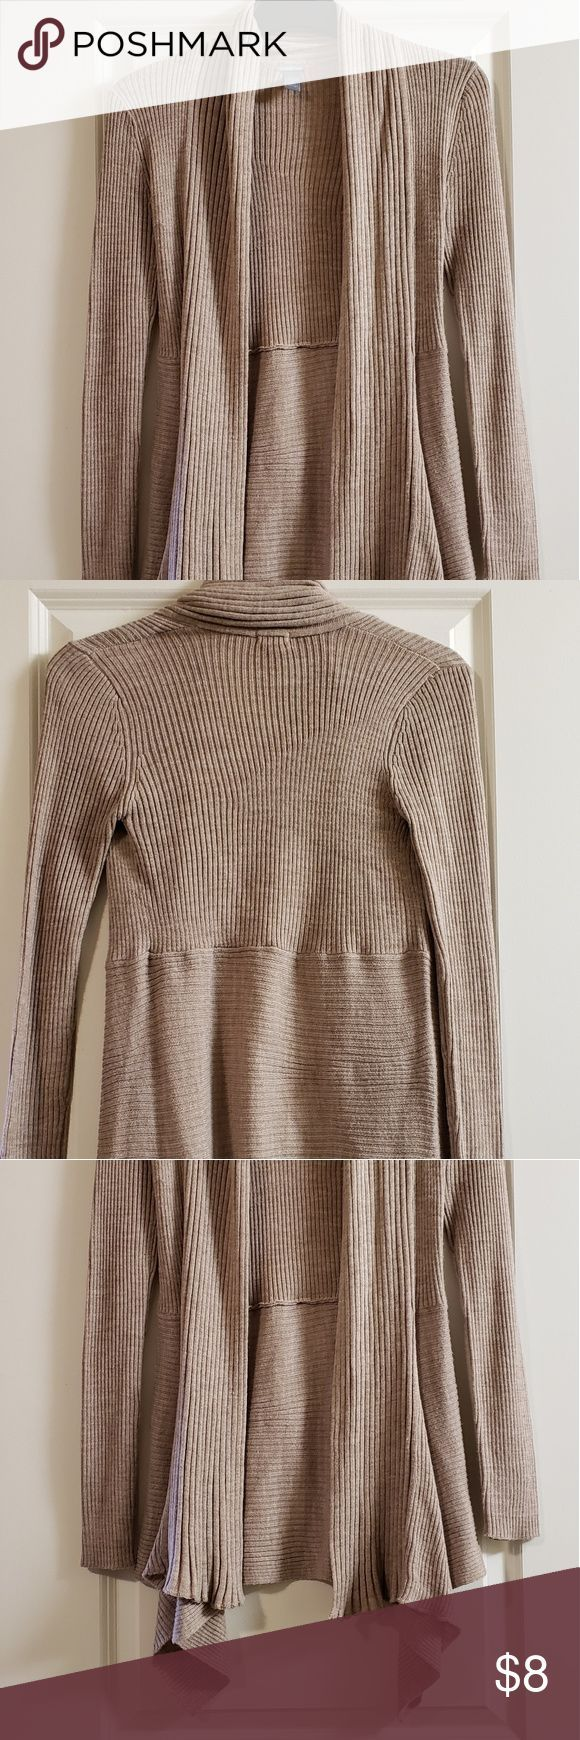 Charlotte Russe Tan Sweater Perfect lightweight sweater for work or professional…